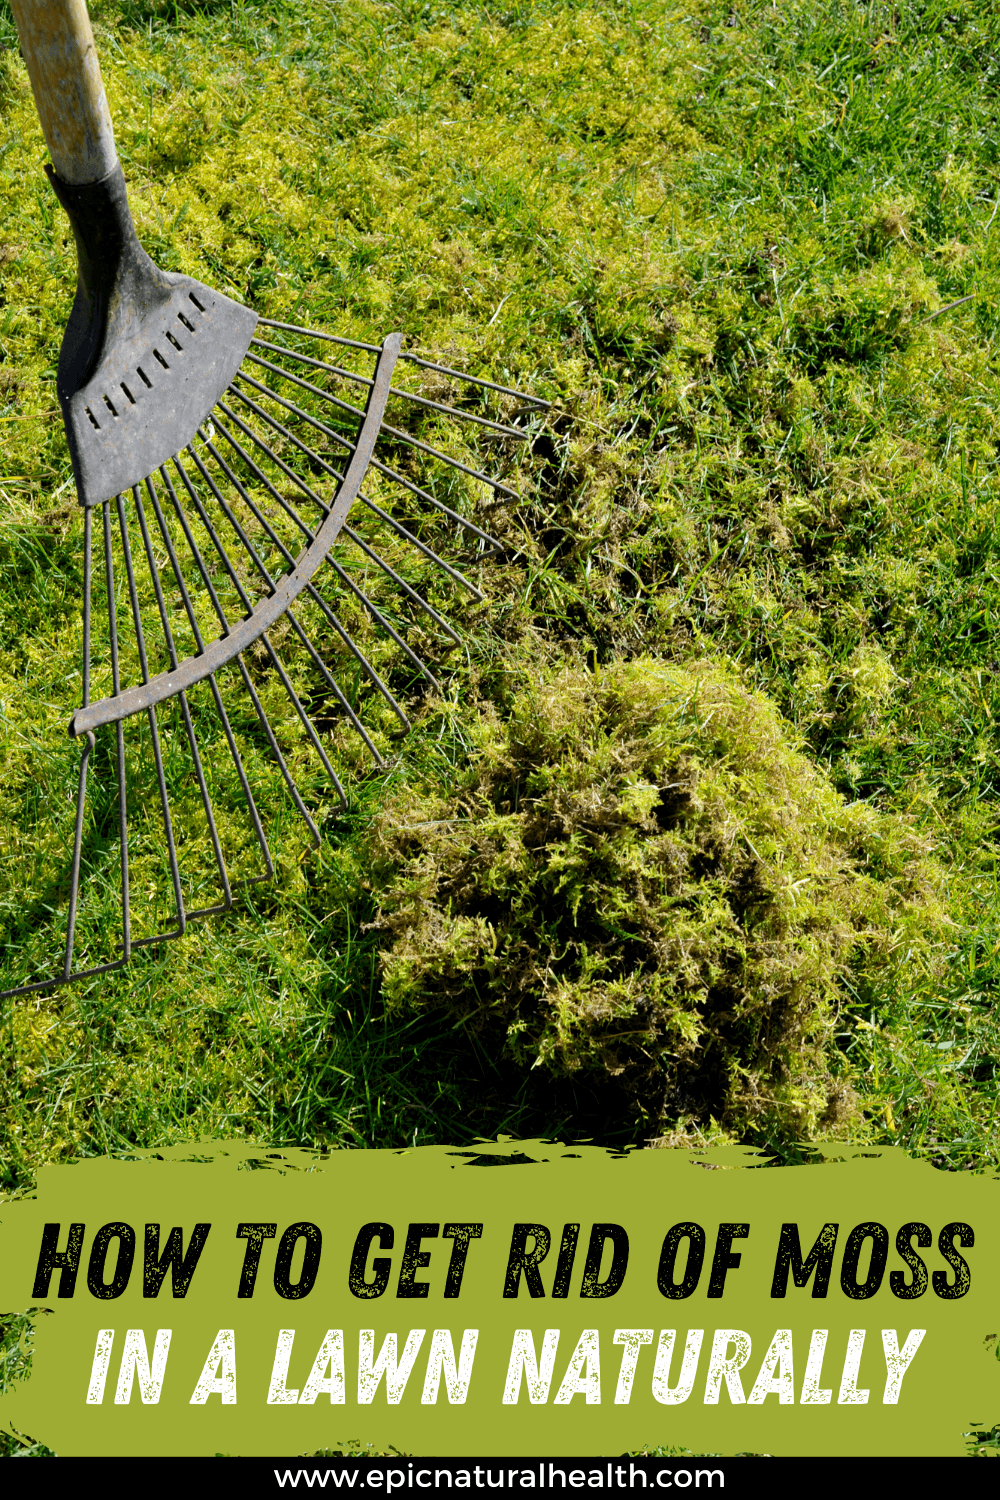 How to Get rid of moss in a lawn naturally